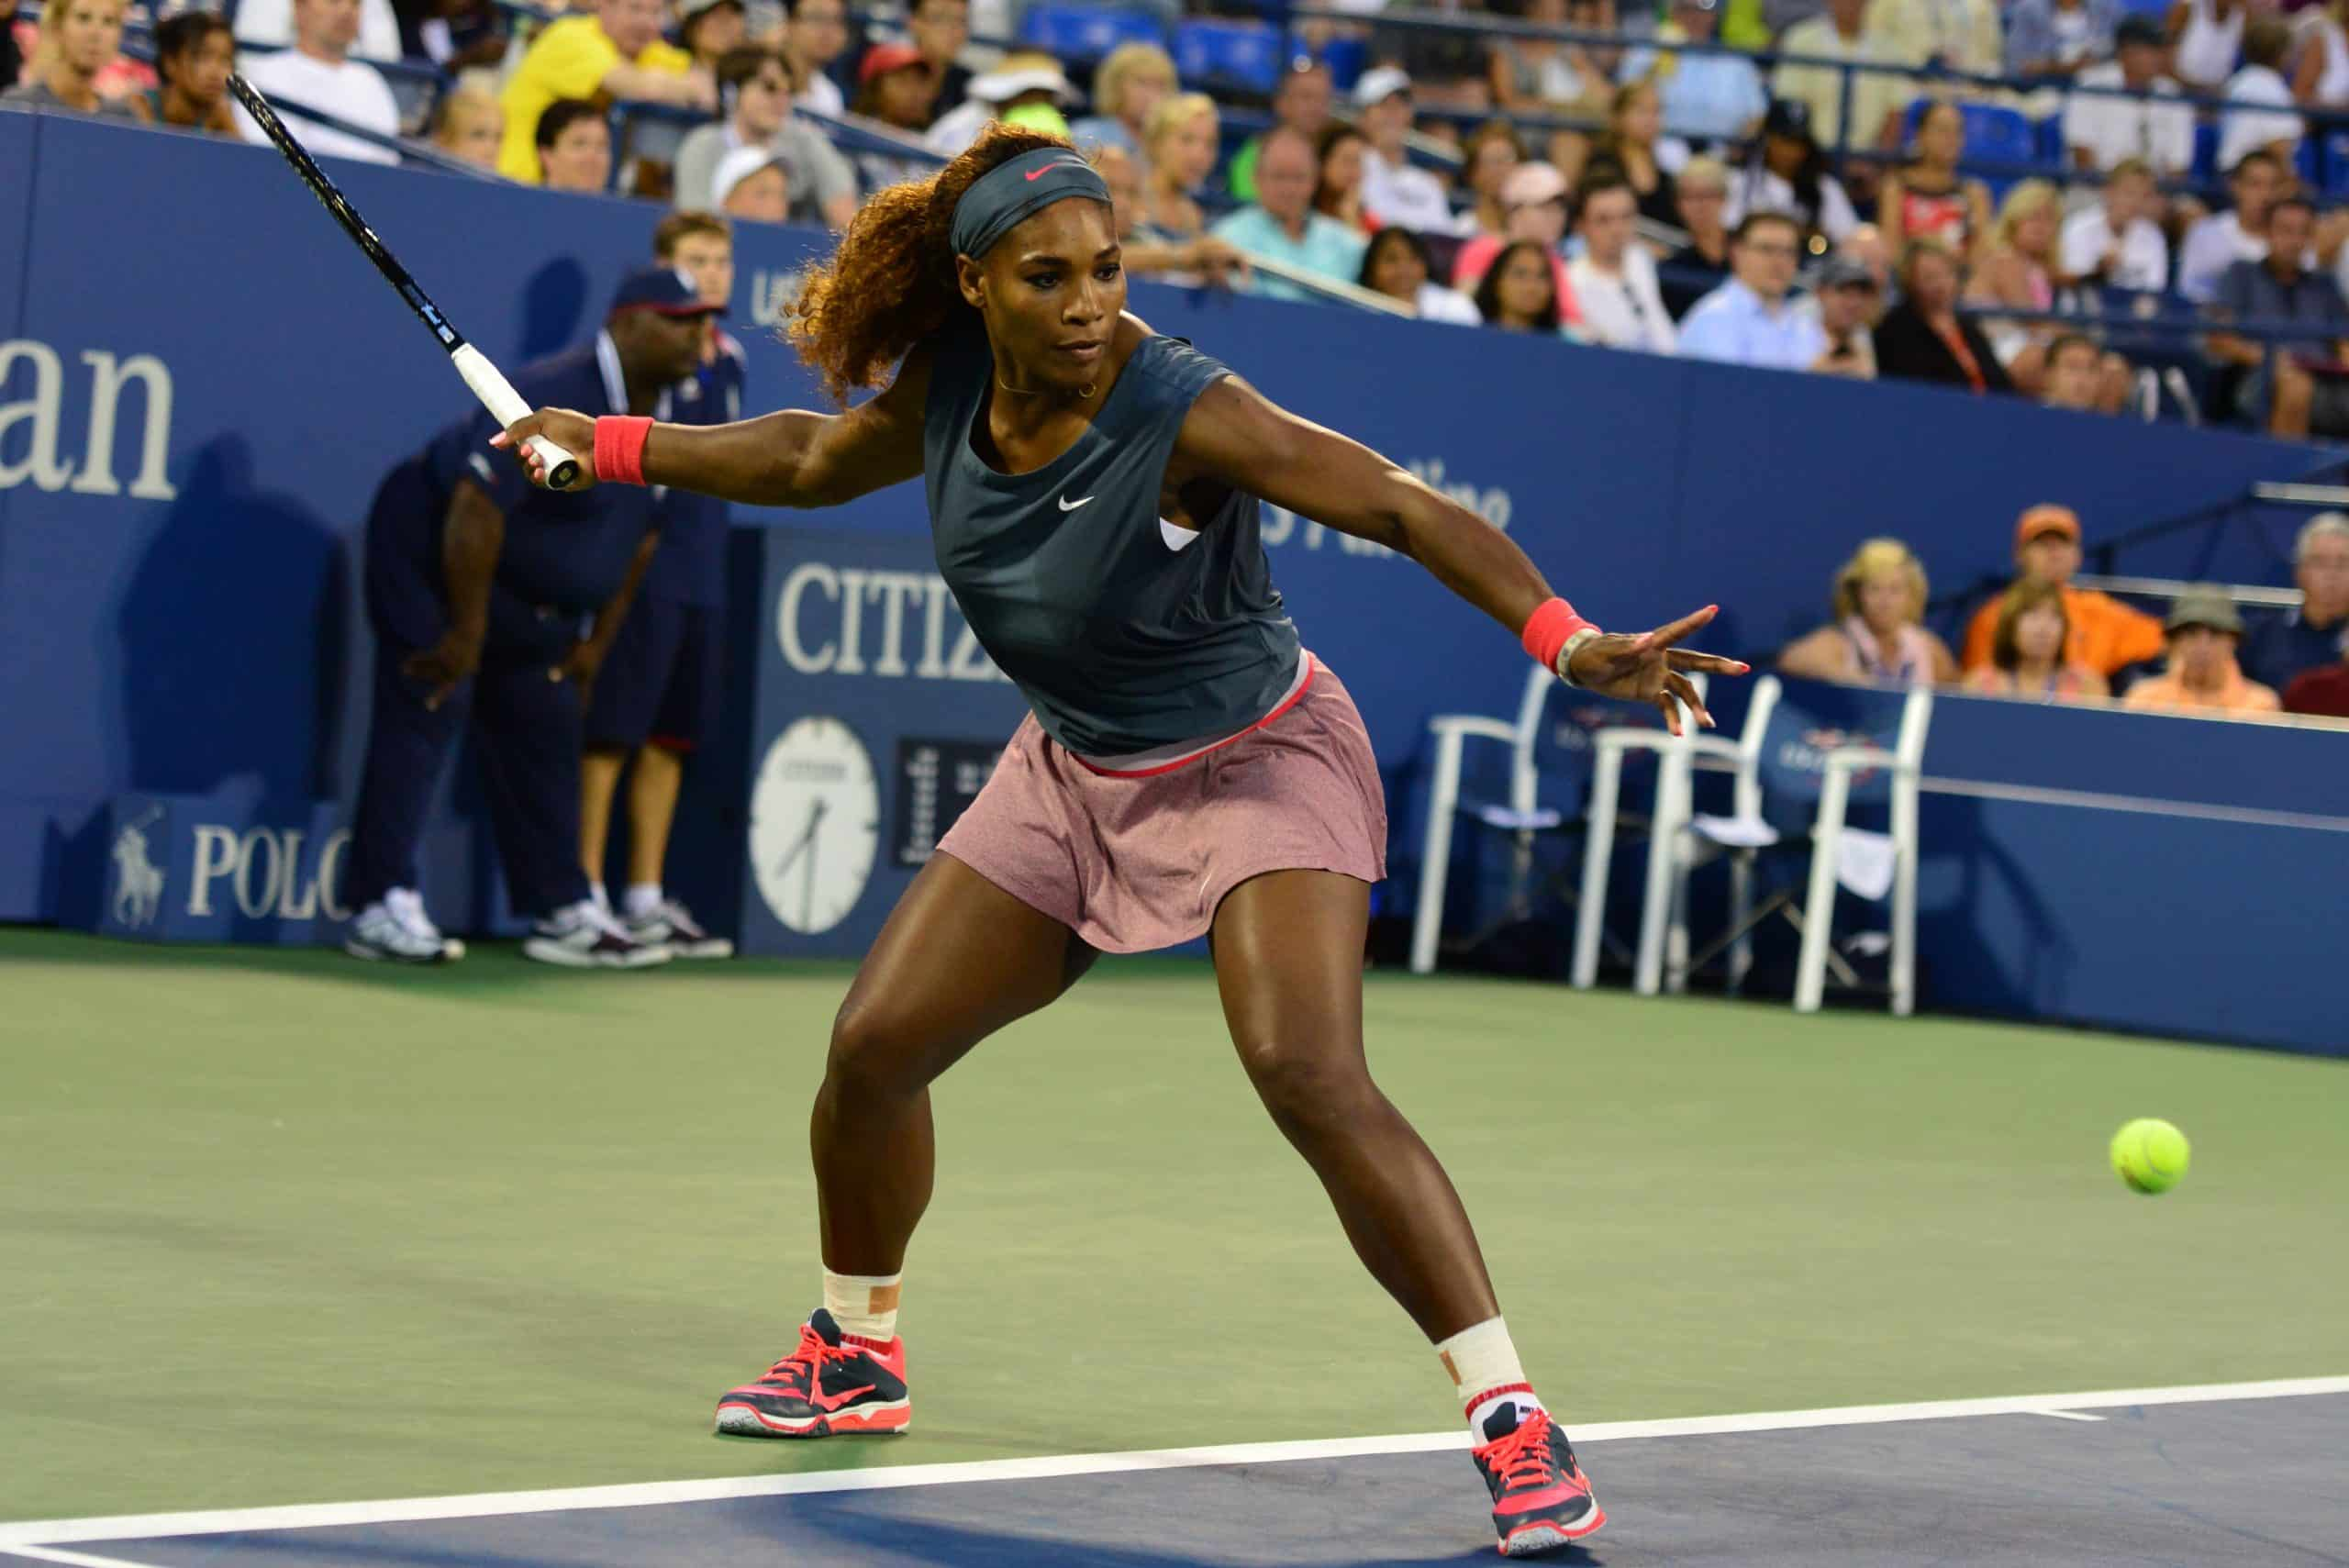 Serena Williams Out of US Open, Azarenka to Meet Osaka in the Finals